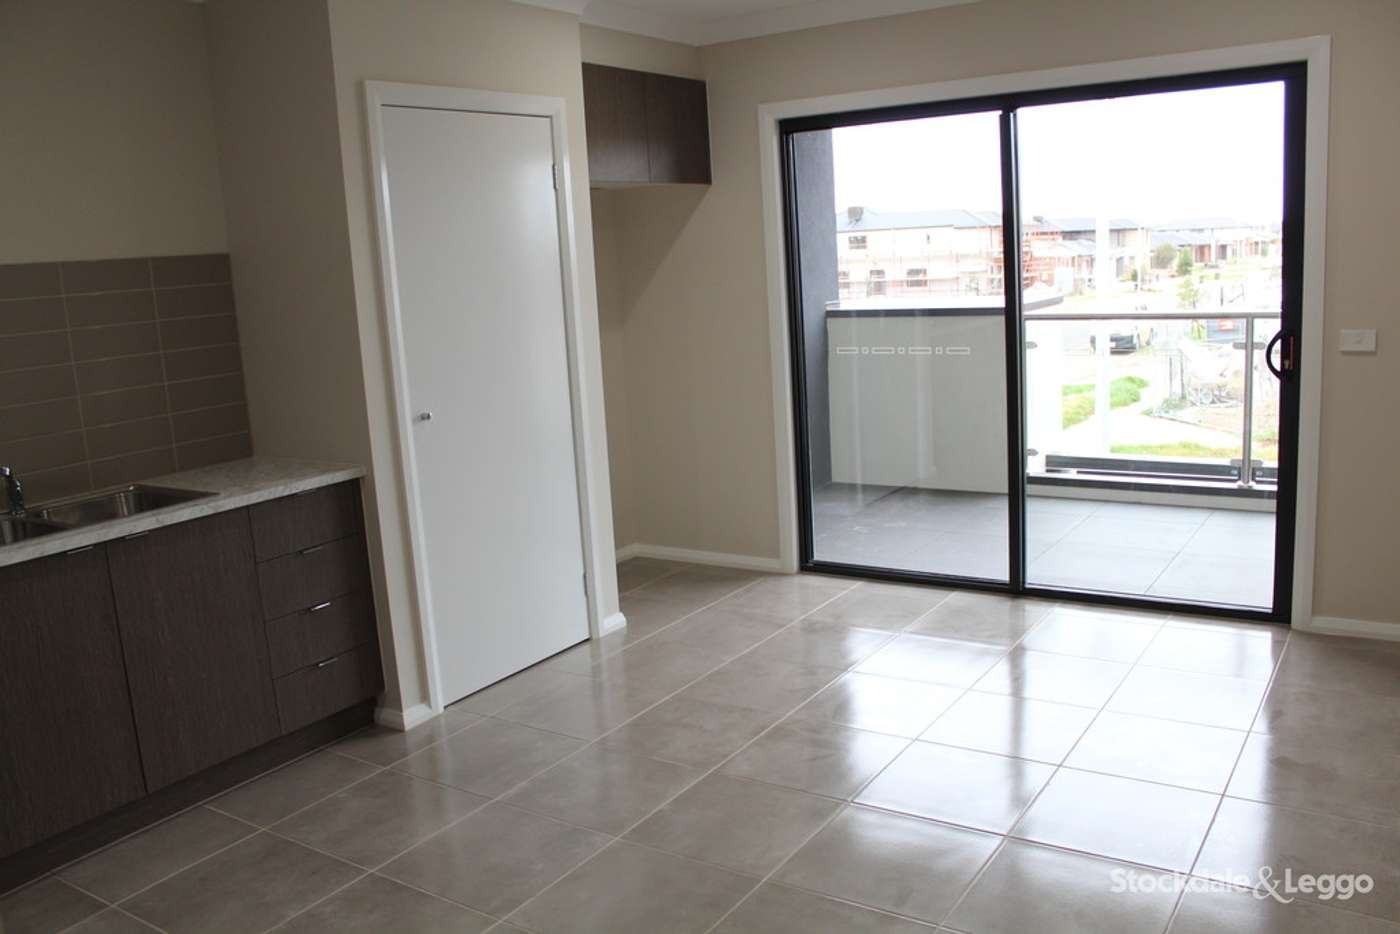 Seventh view of Homely townhouse listing, 45 Goldsborough Road, Truganina VIC 3029